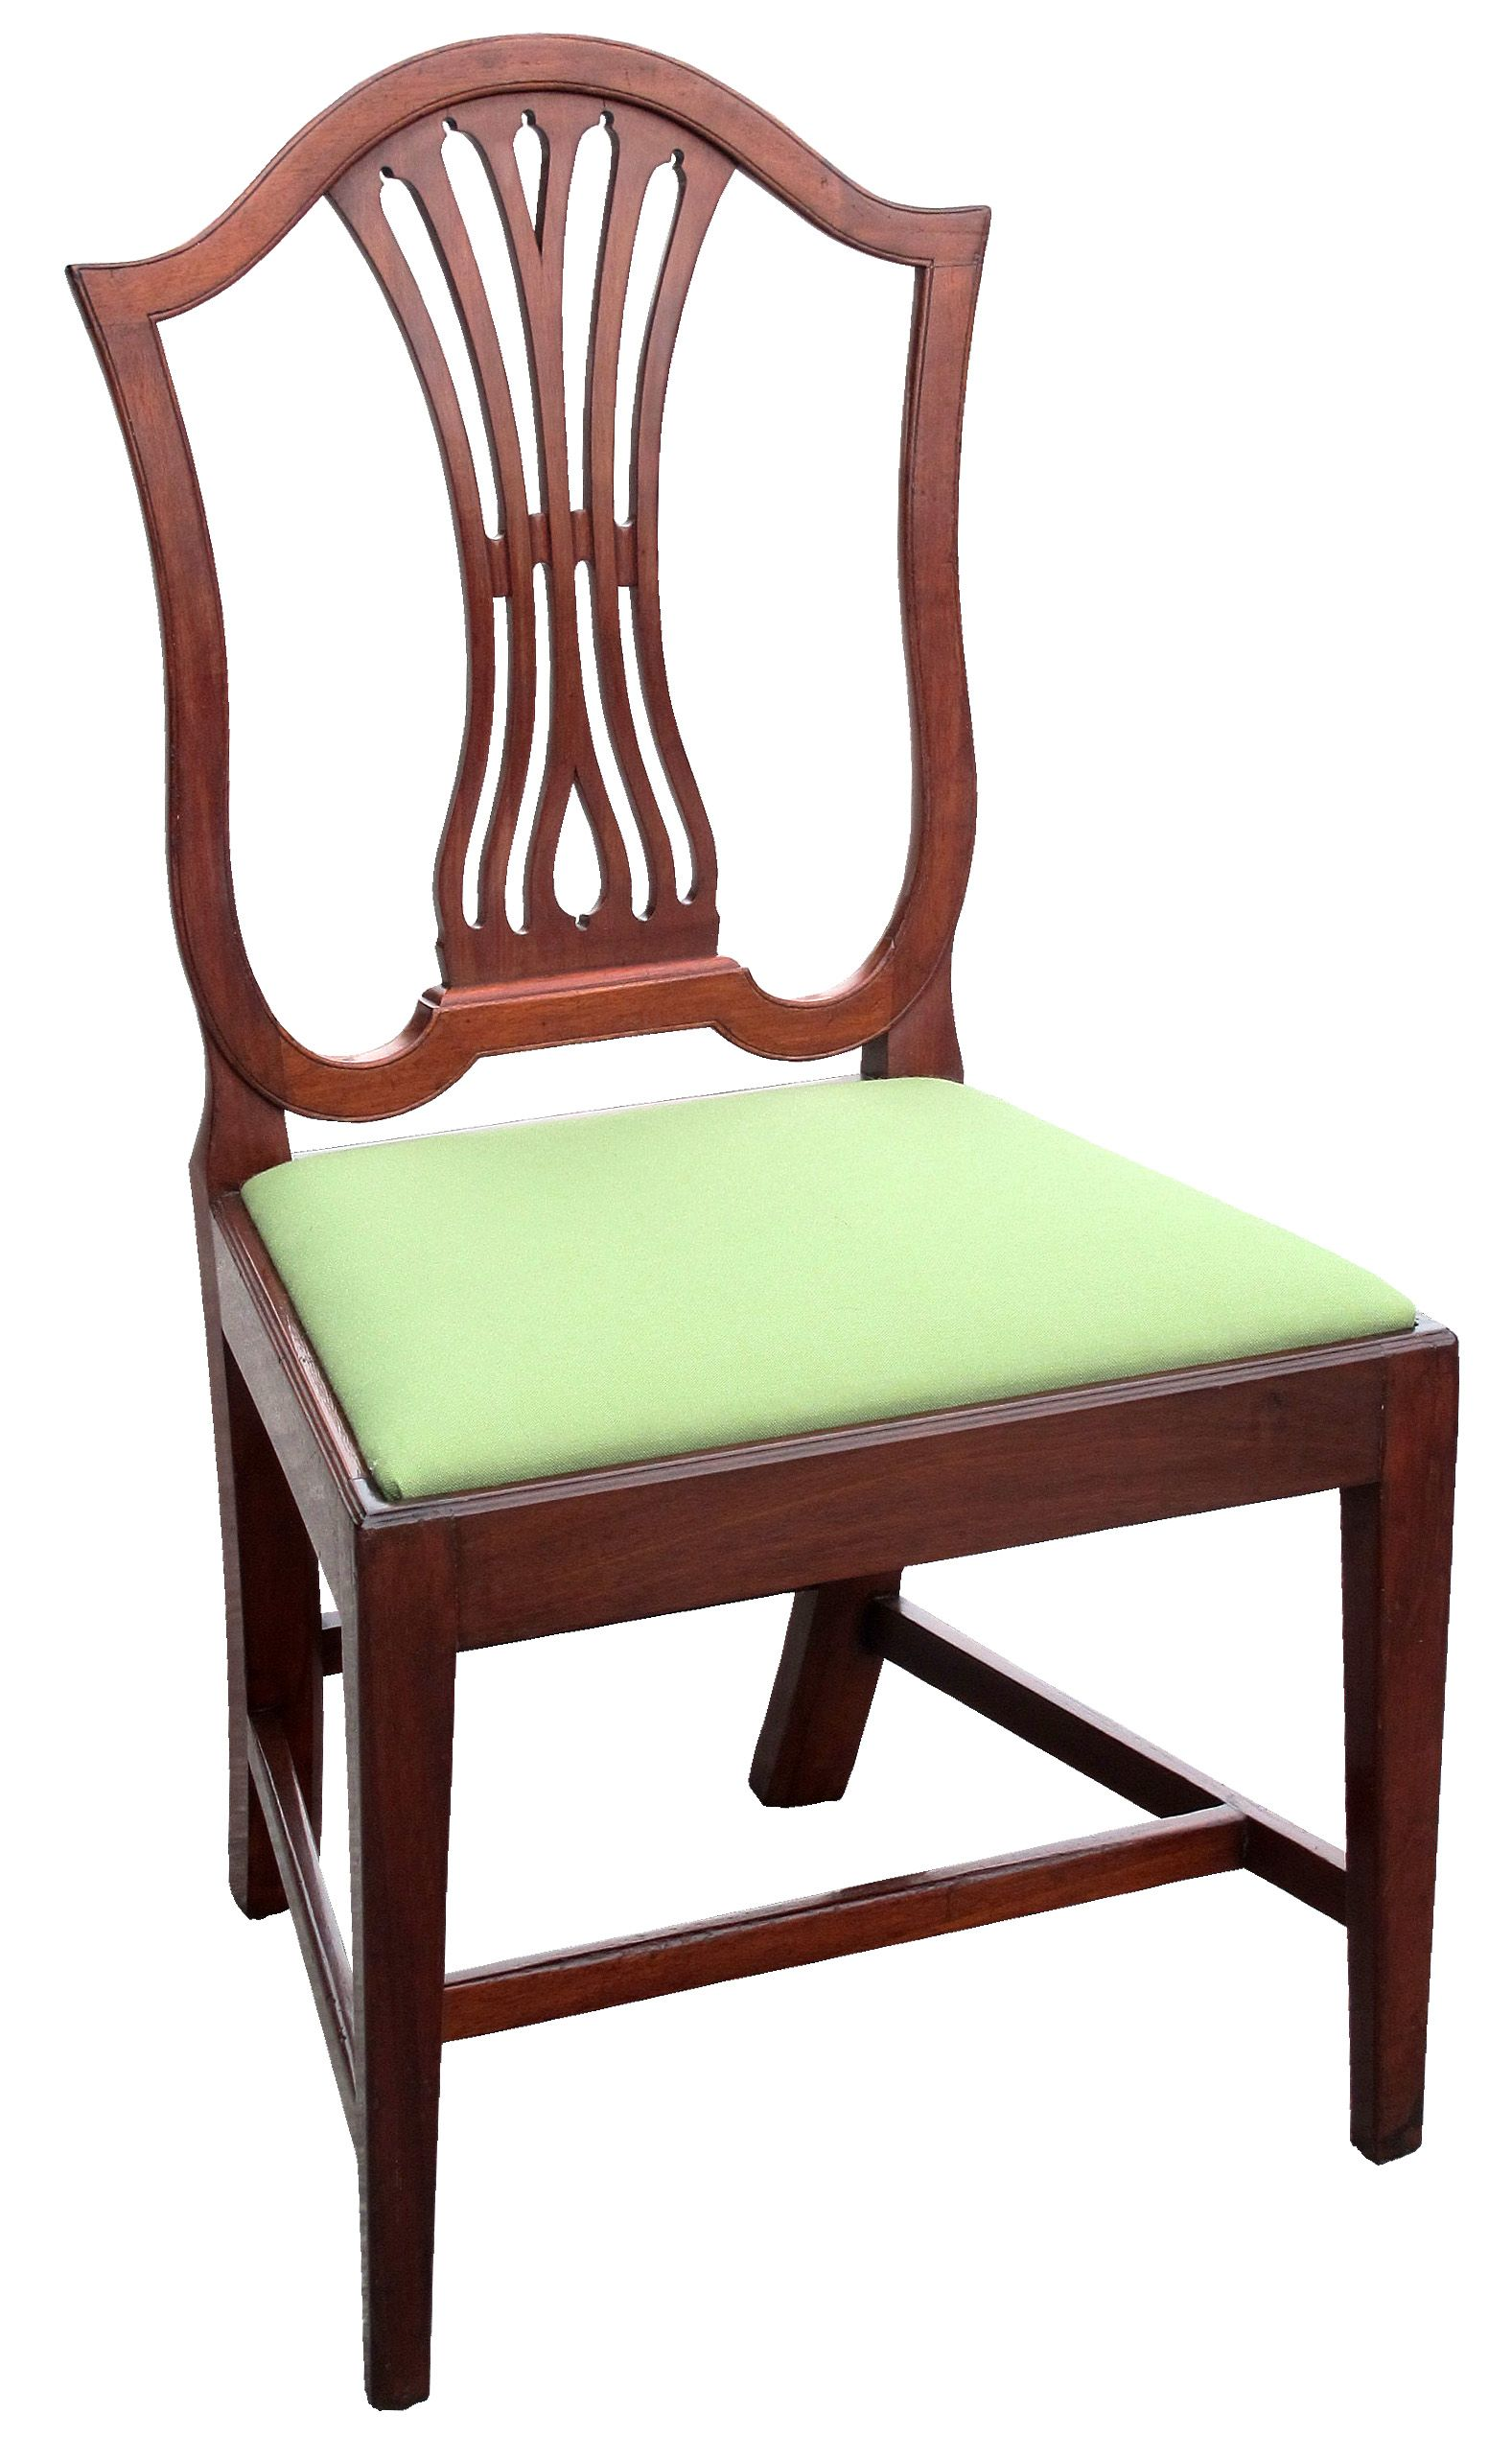 federal dining chairs red tub chair homebase a carved mahogany modified shield back or urn